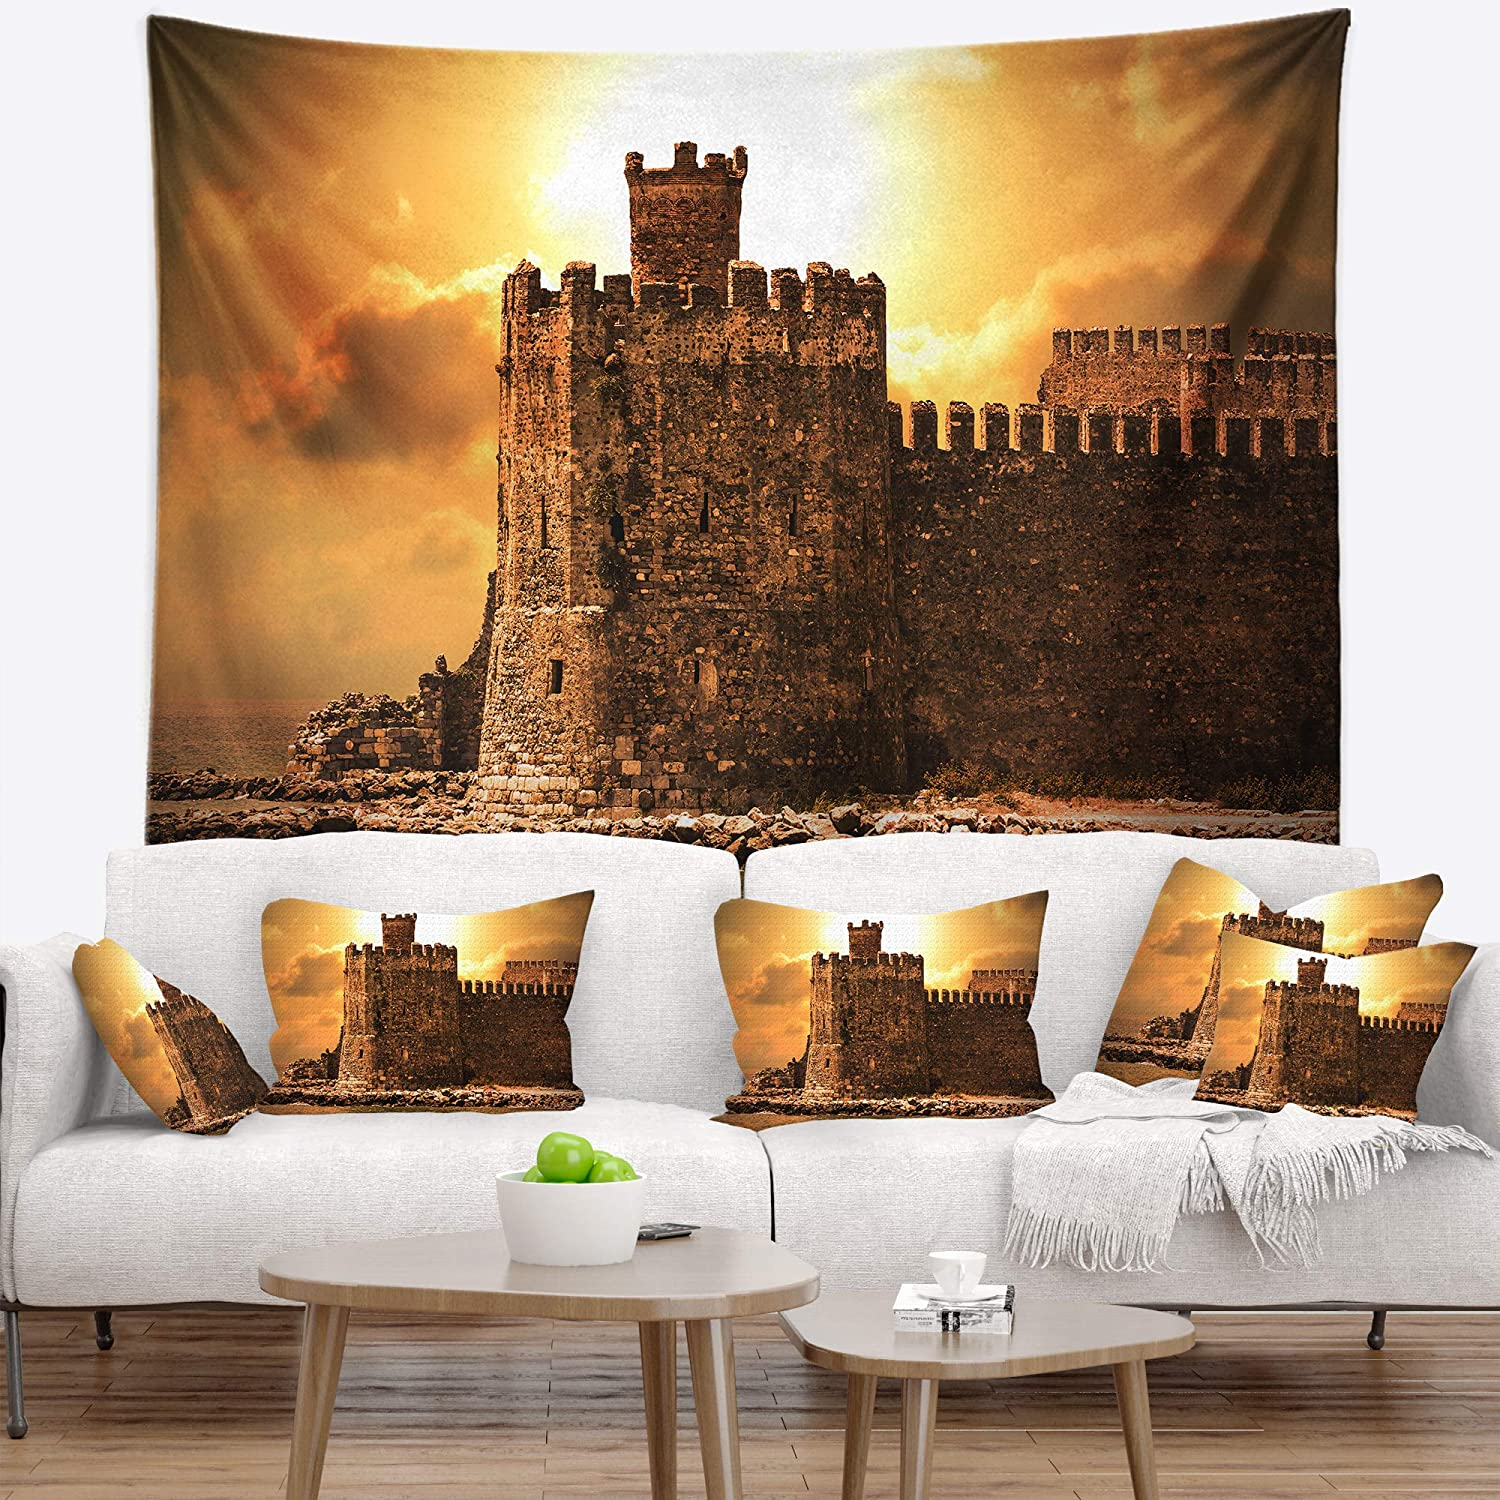 x 32 in Medium Designart TAP15193-39-32 Old Castle at Sunset Landscape Blanket D/écor Art for Home and Office Wall Tapestry 39 in